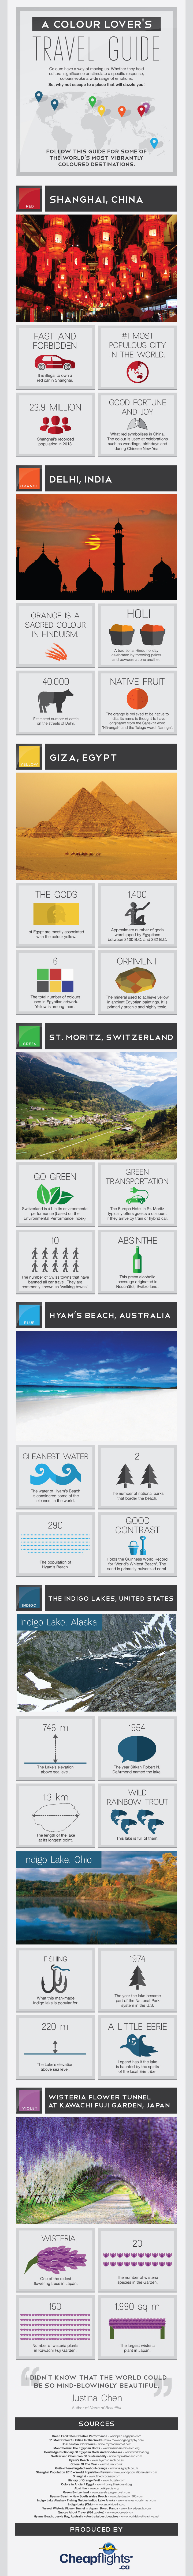 A Travel Guide for Colour Lovers #Infographic